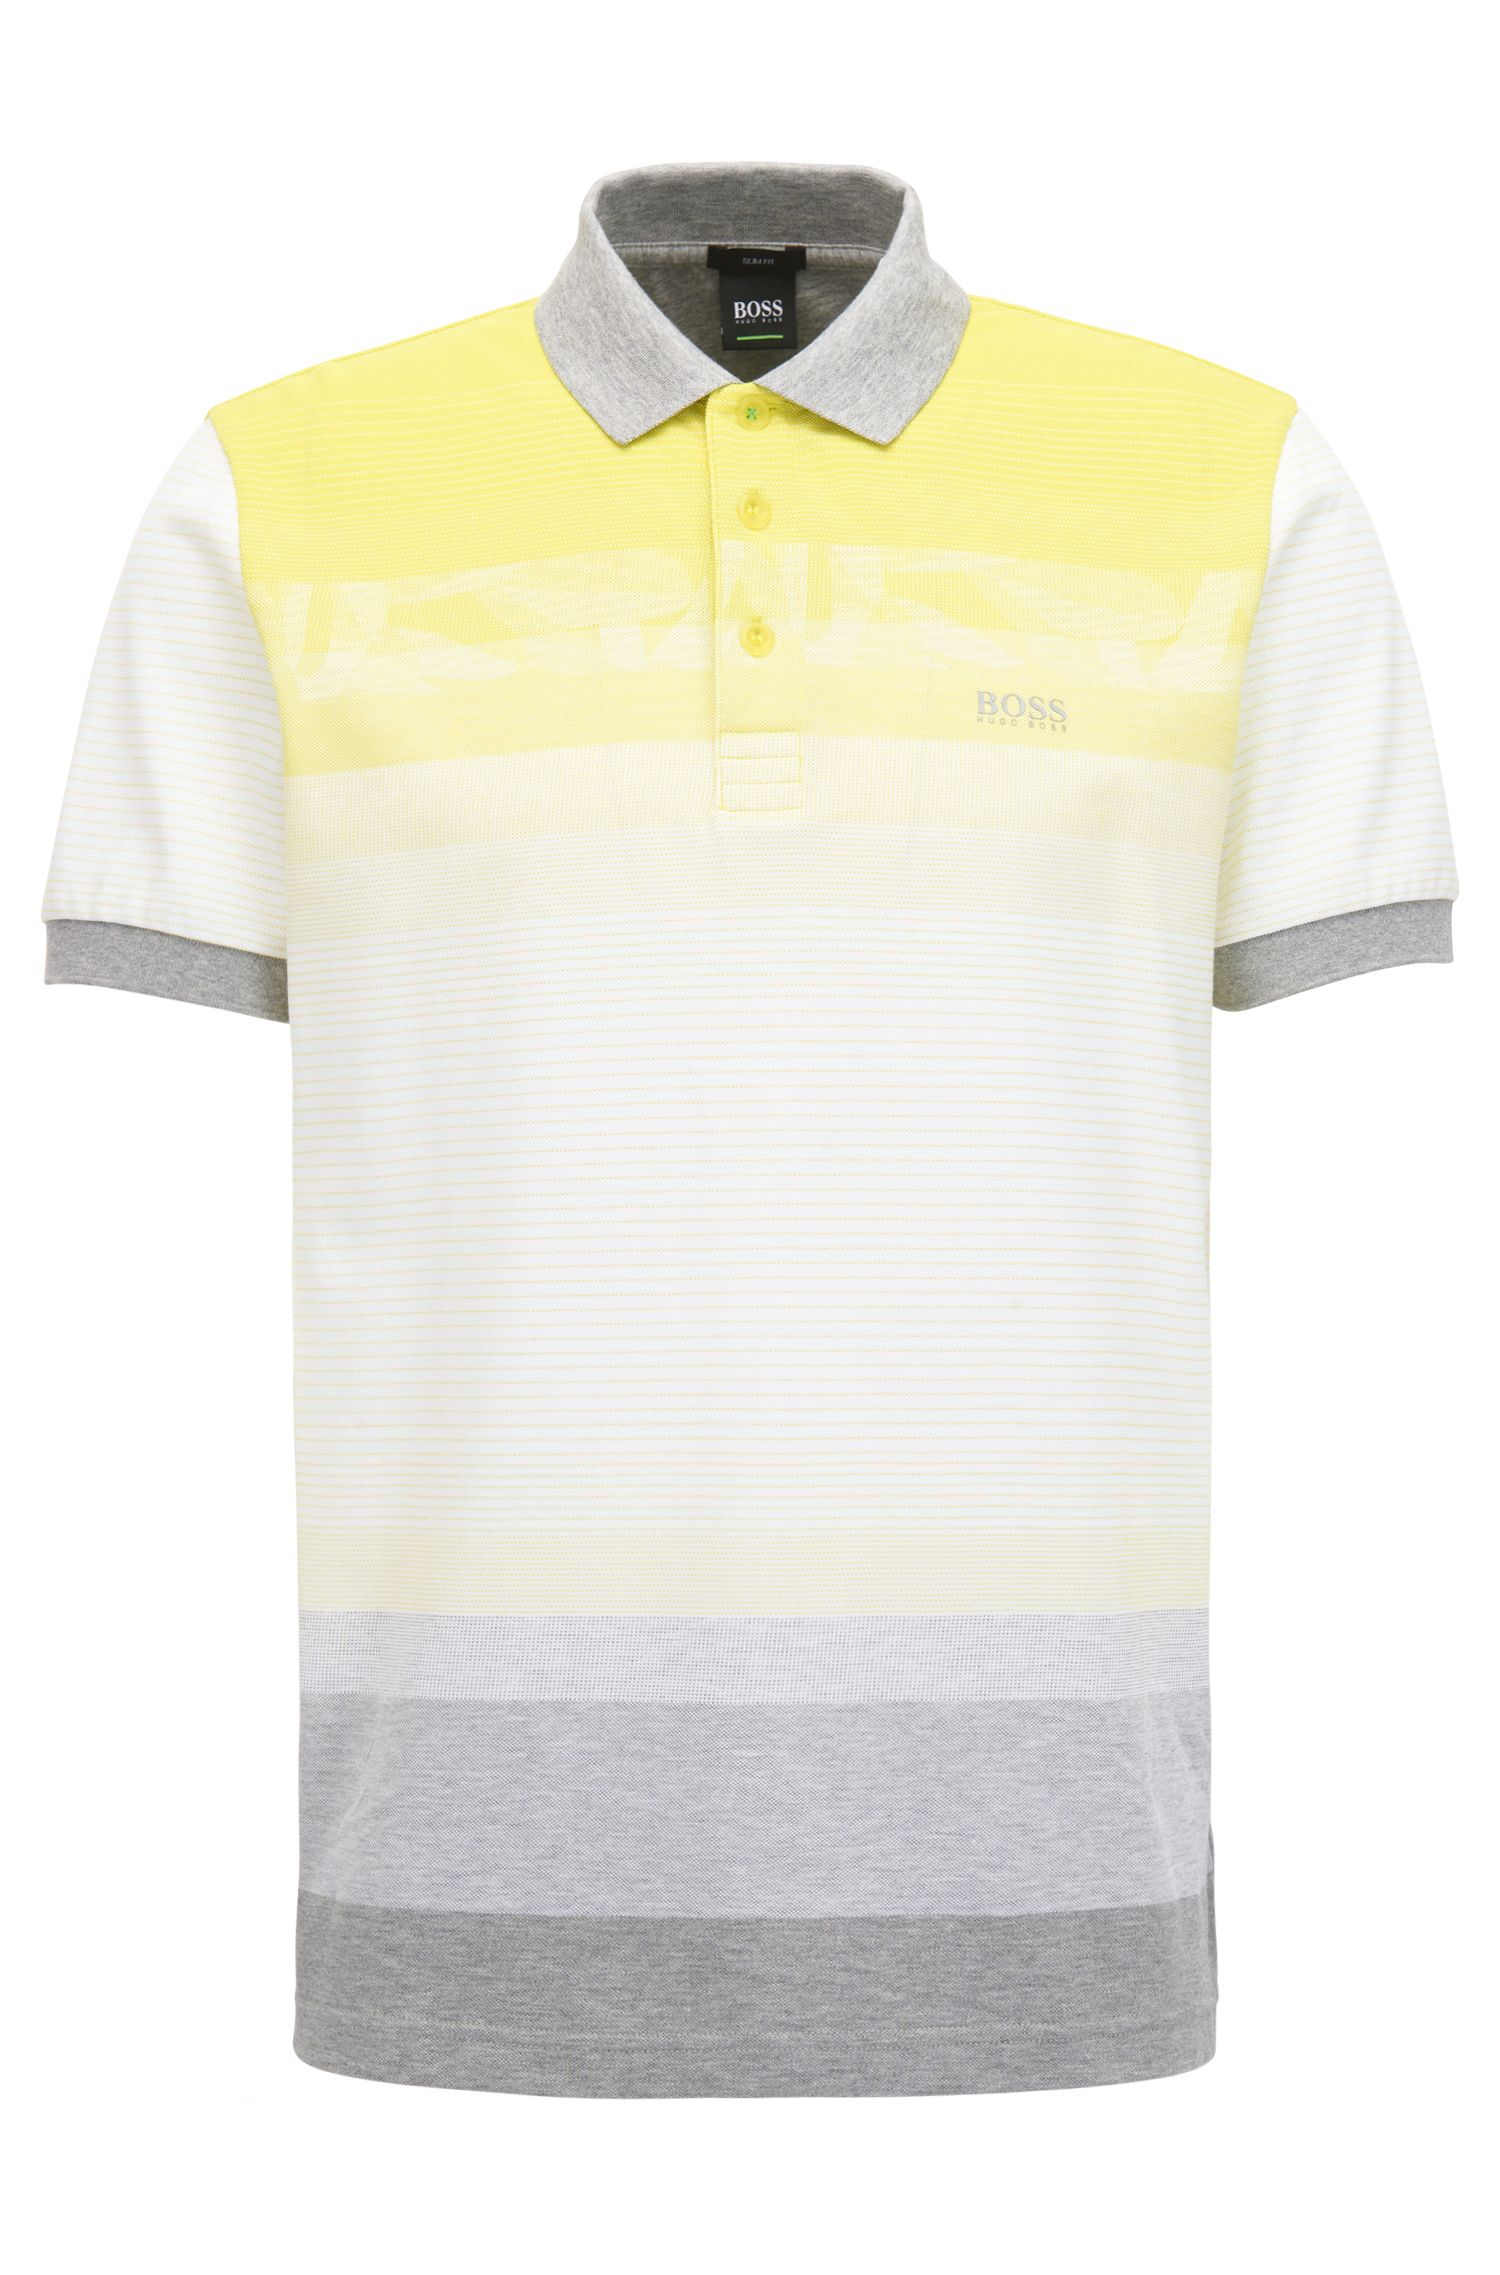 Colorblock Polo Shirt, Slim Fit | Paule